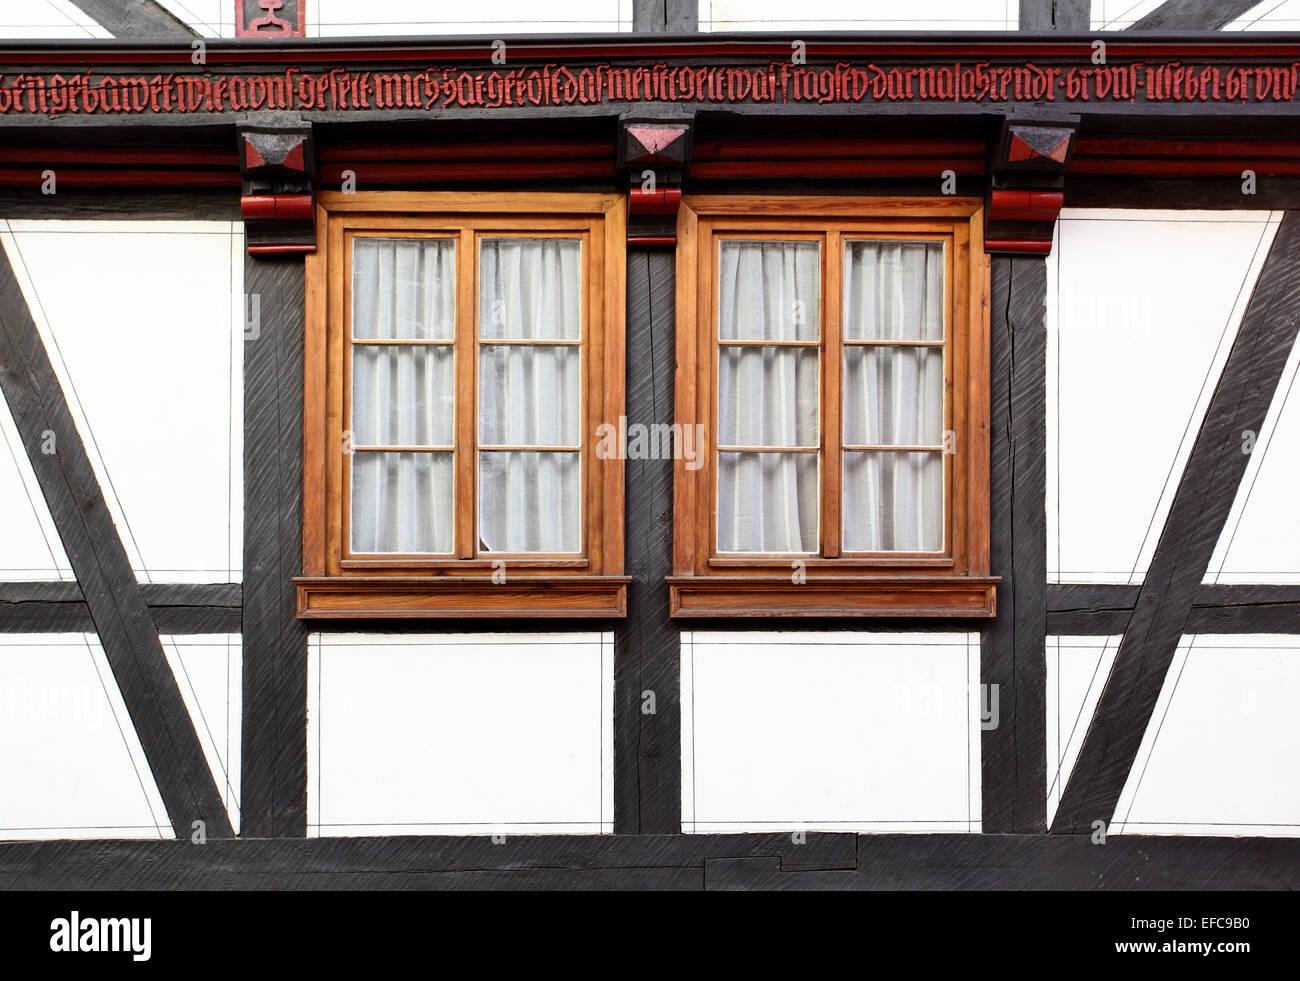 Windows of old timber framing house, Germany - Stock Image